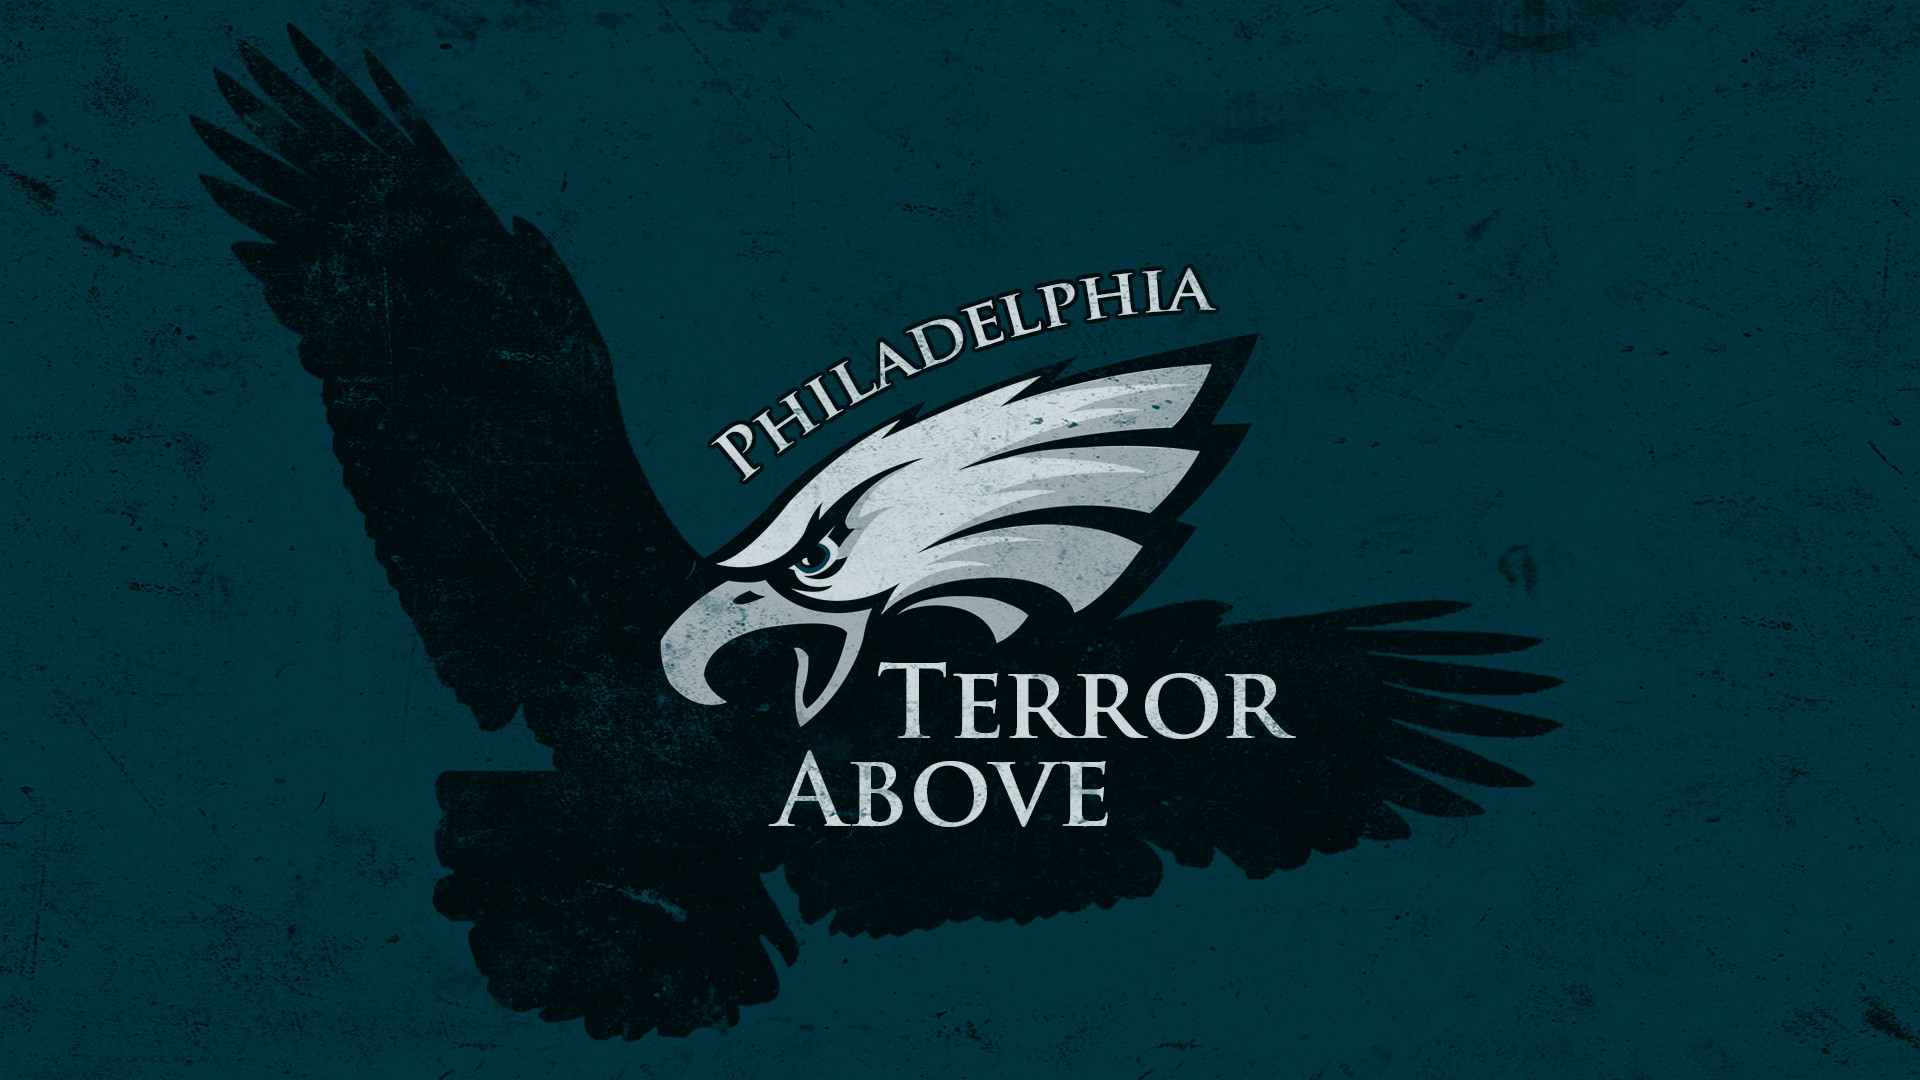 Philadelphia Eagles Hd Wallpapers Pictures